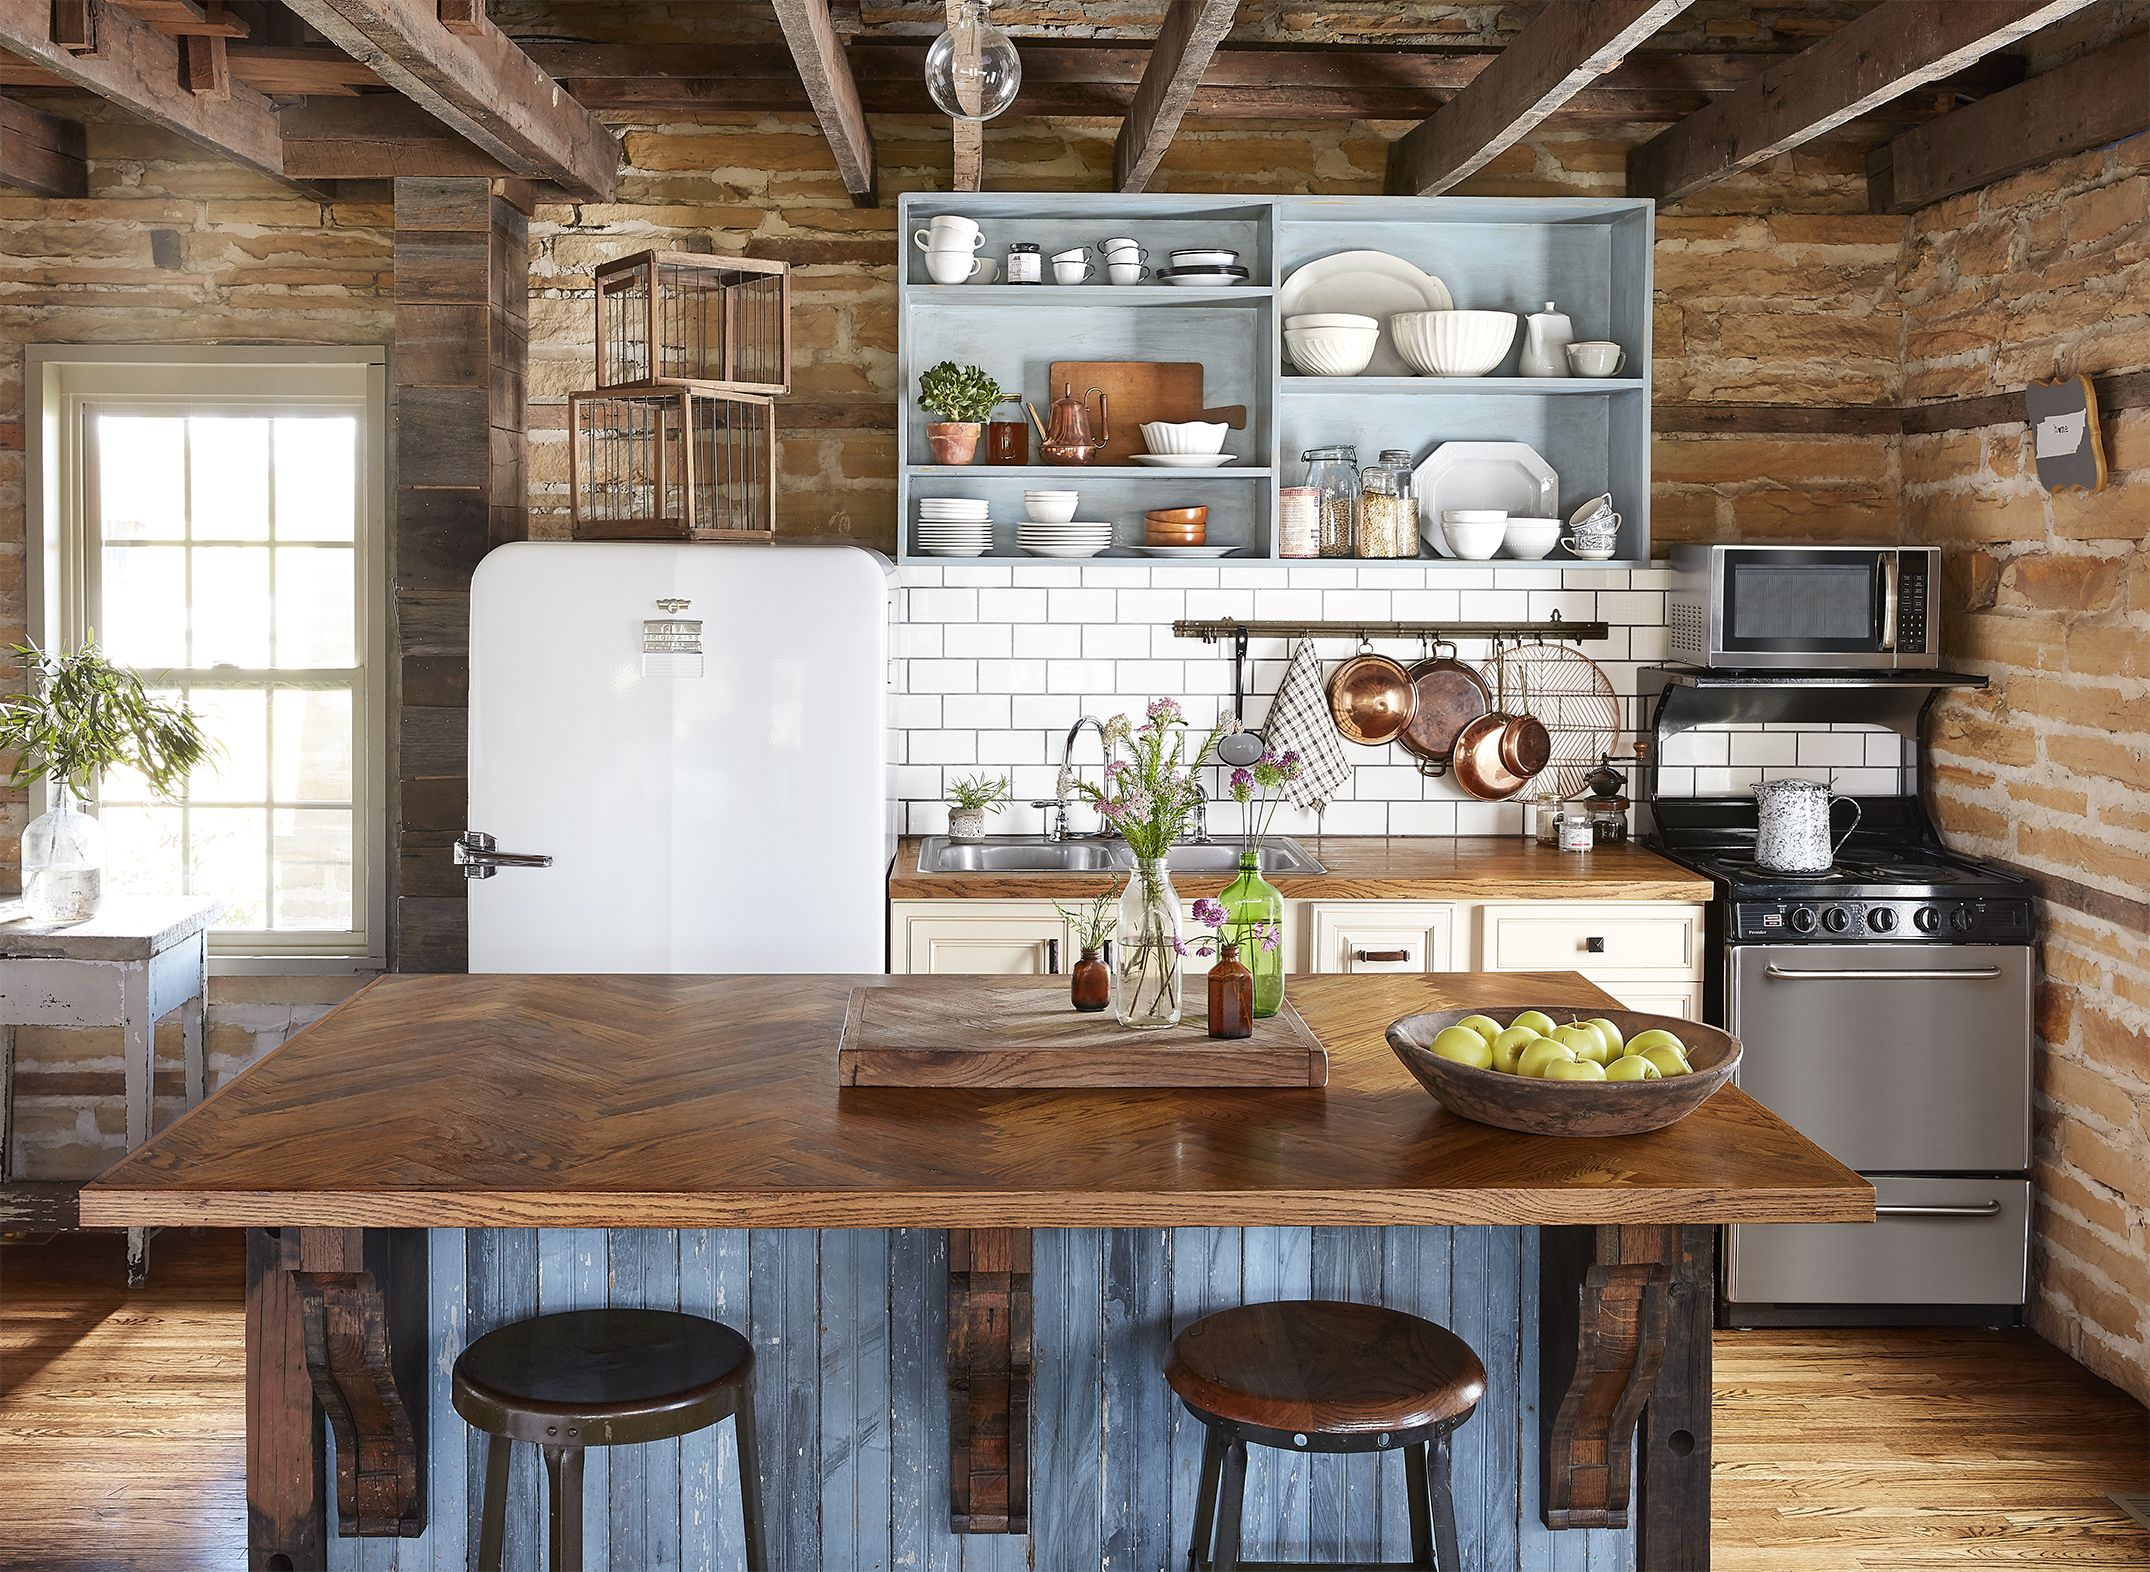 Rustic kitchen island ideas Ultimate Kitchen Country Living Magazine 24 Farmhouse Style Kitchens Rustic Decor Ideas For Kitchens